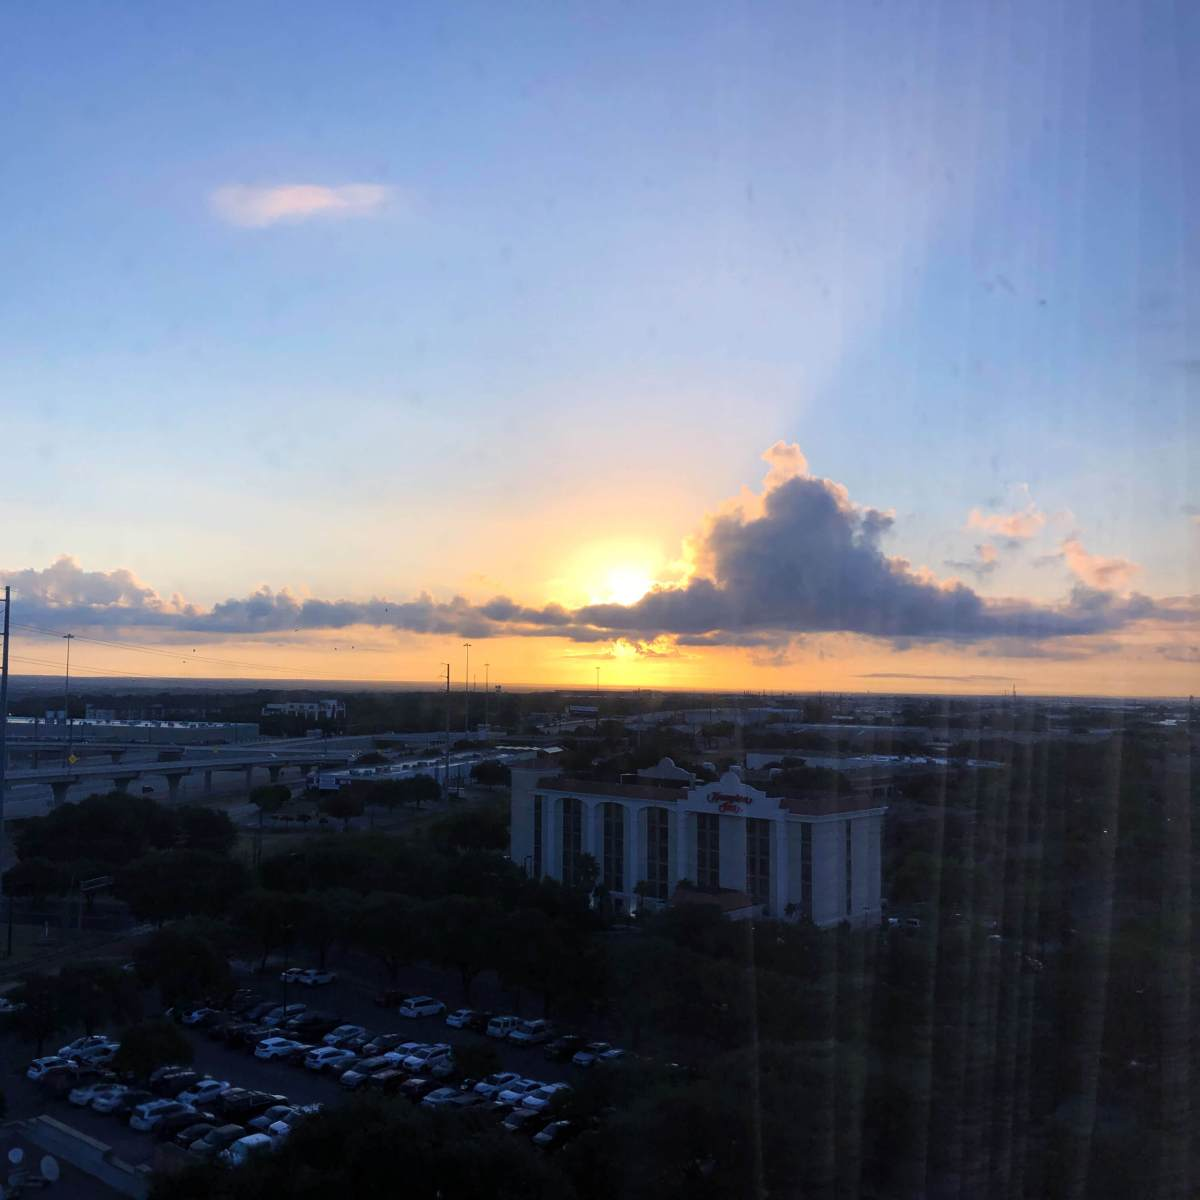 Sunrise from Hotel Omni Southpark in Austin, Texas